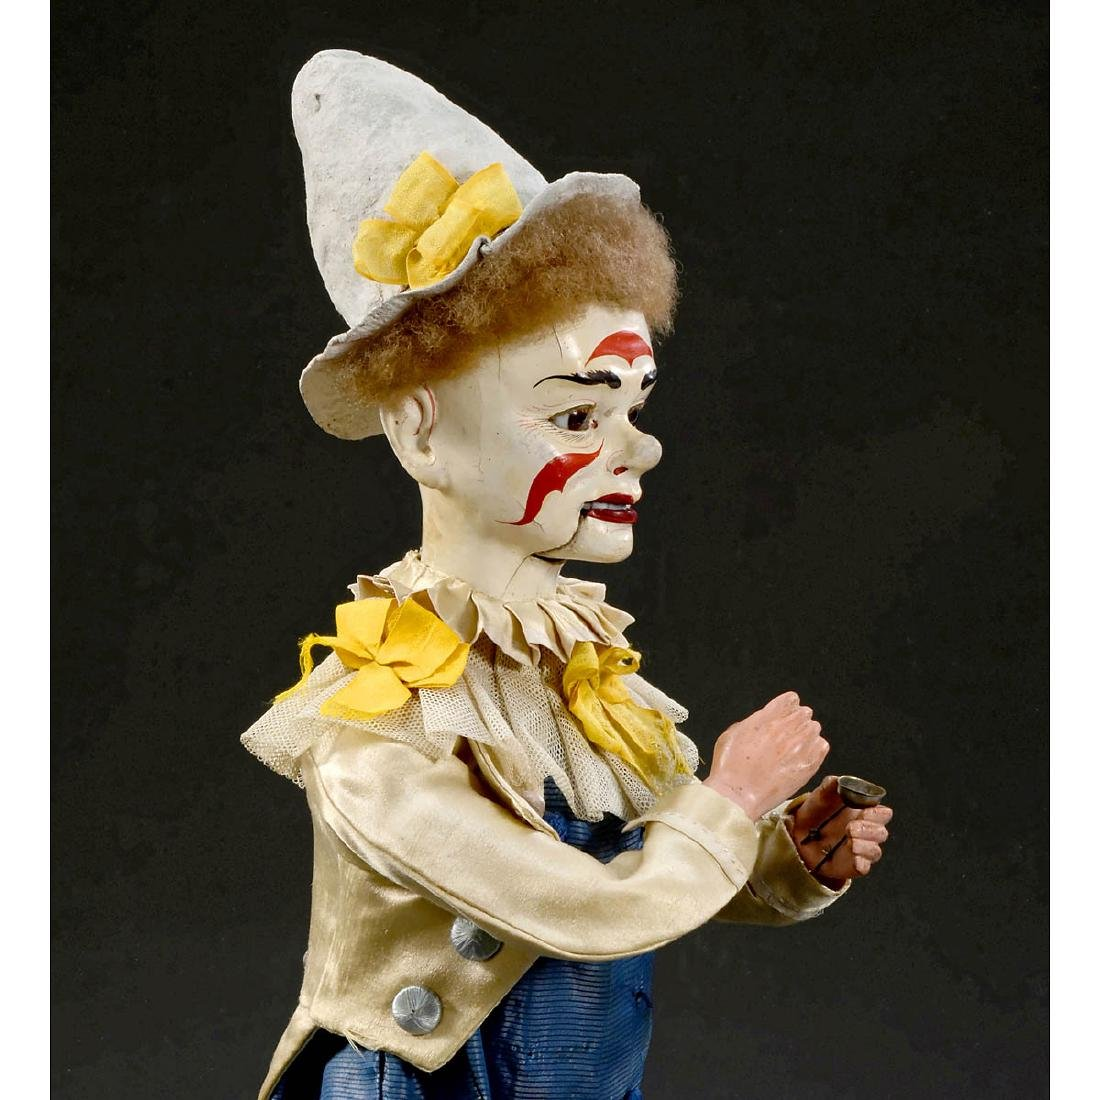 Musical Automaton Clown Taking Snuff by Adolph Müller, - 3